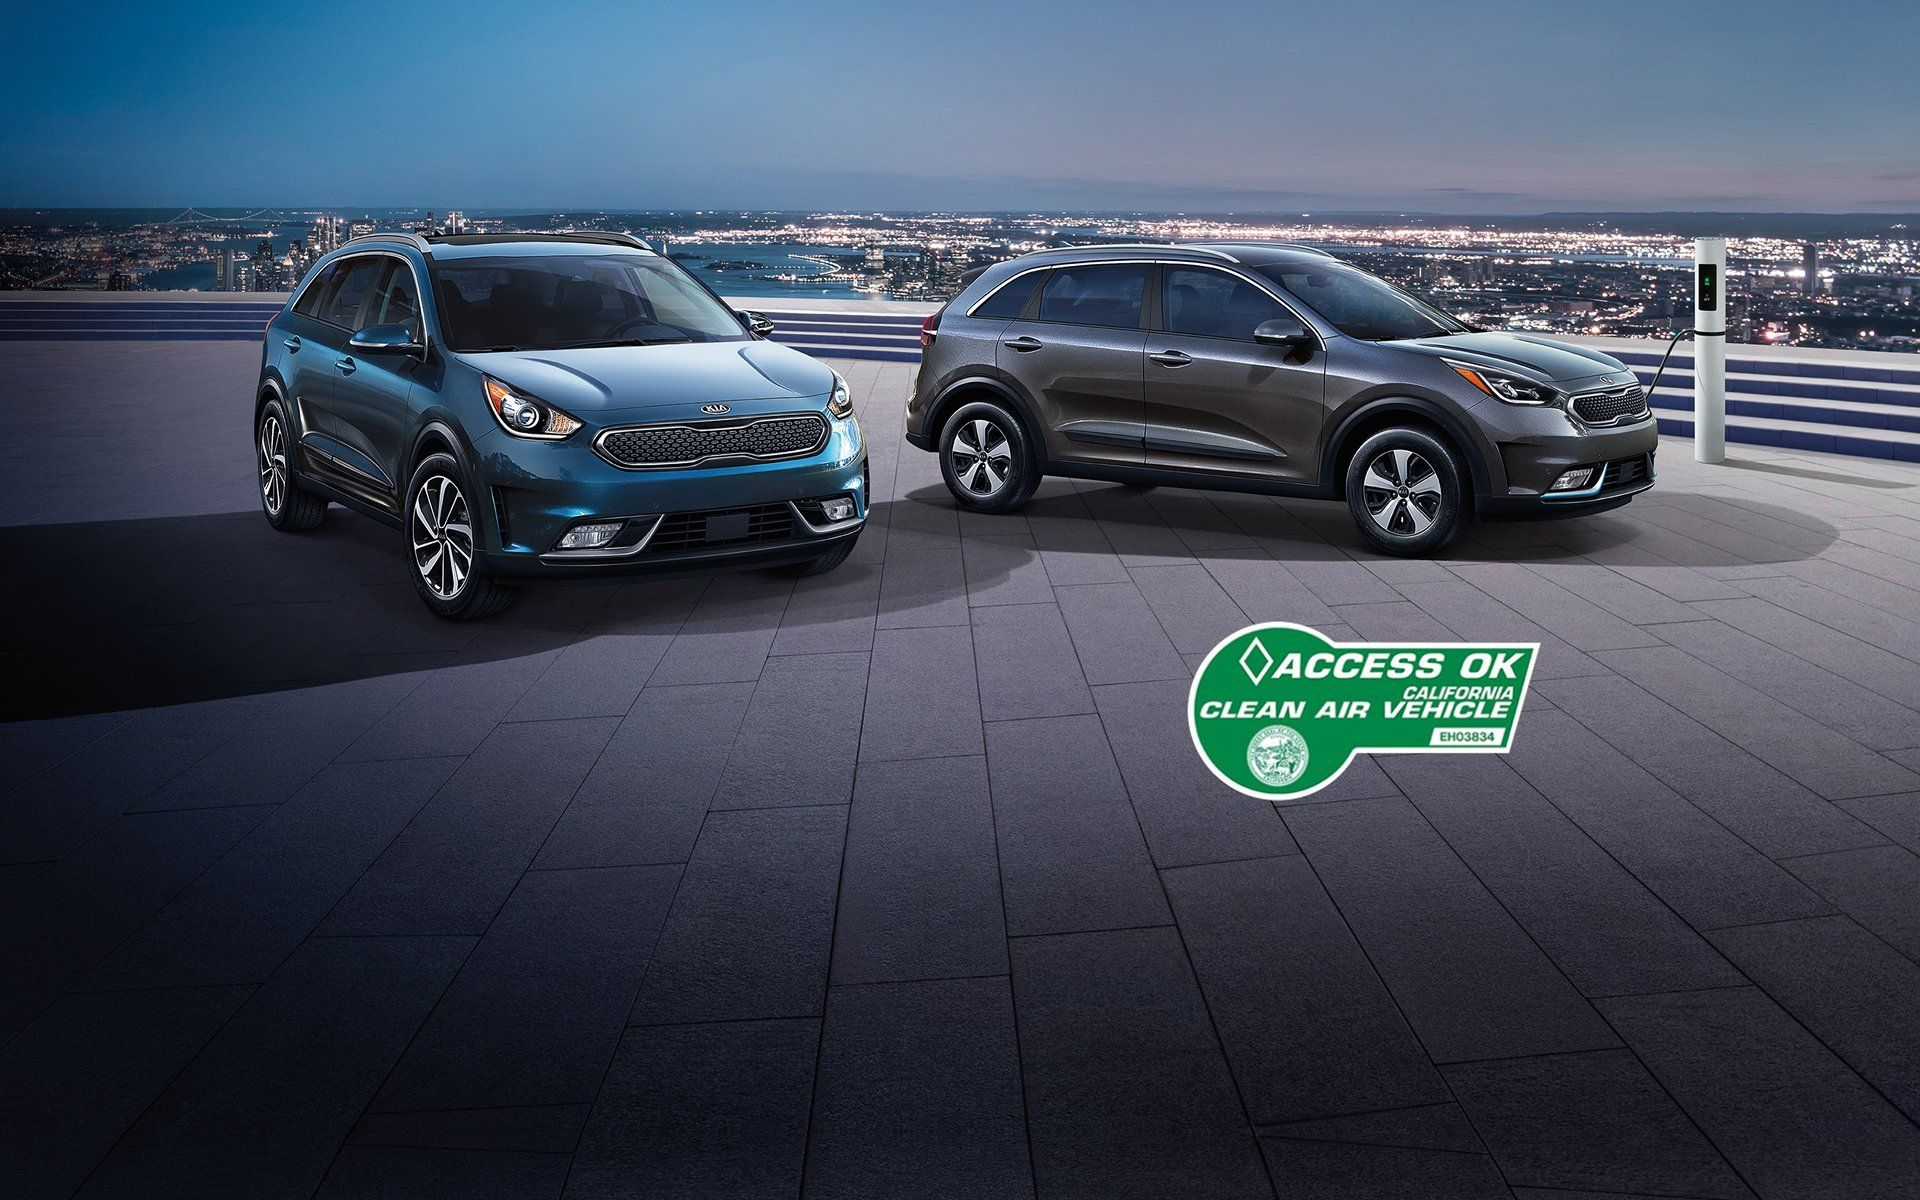 High Occupancy Vehicle Decal For The 2018 Niro Phev Crossover Suv Kia Vehicles